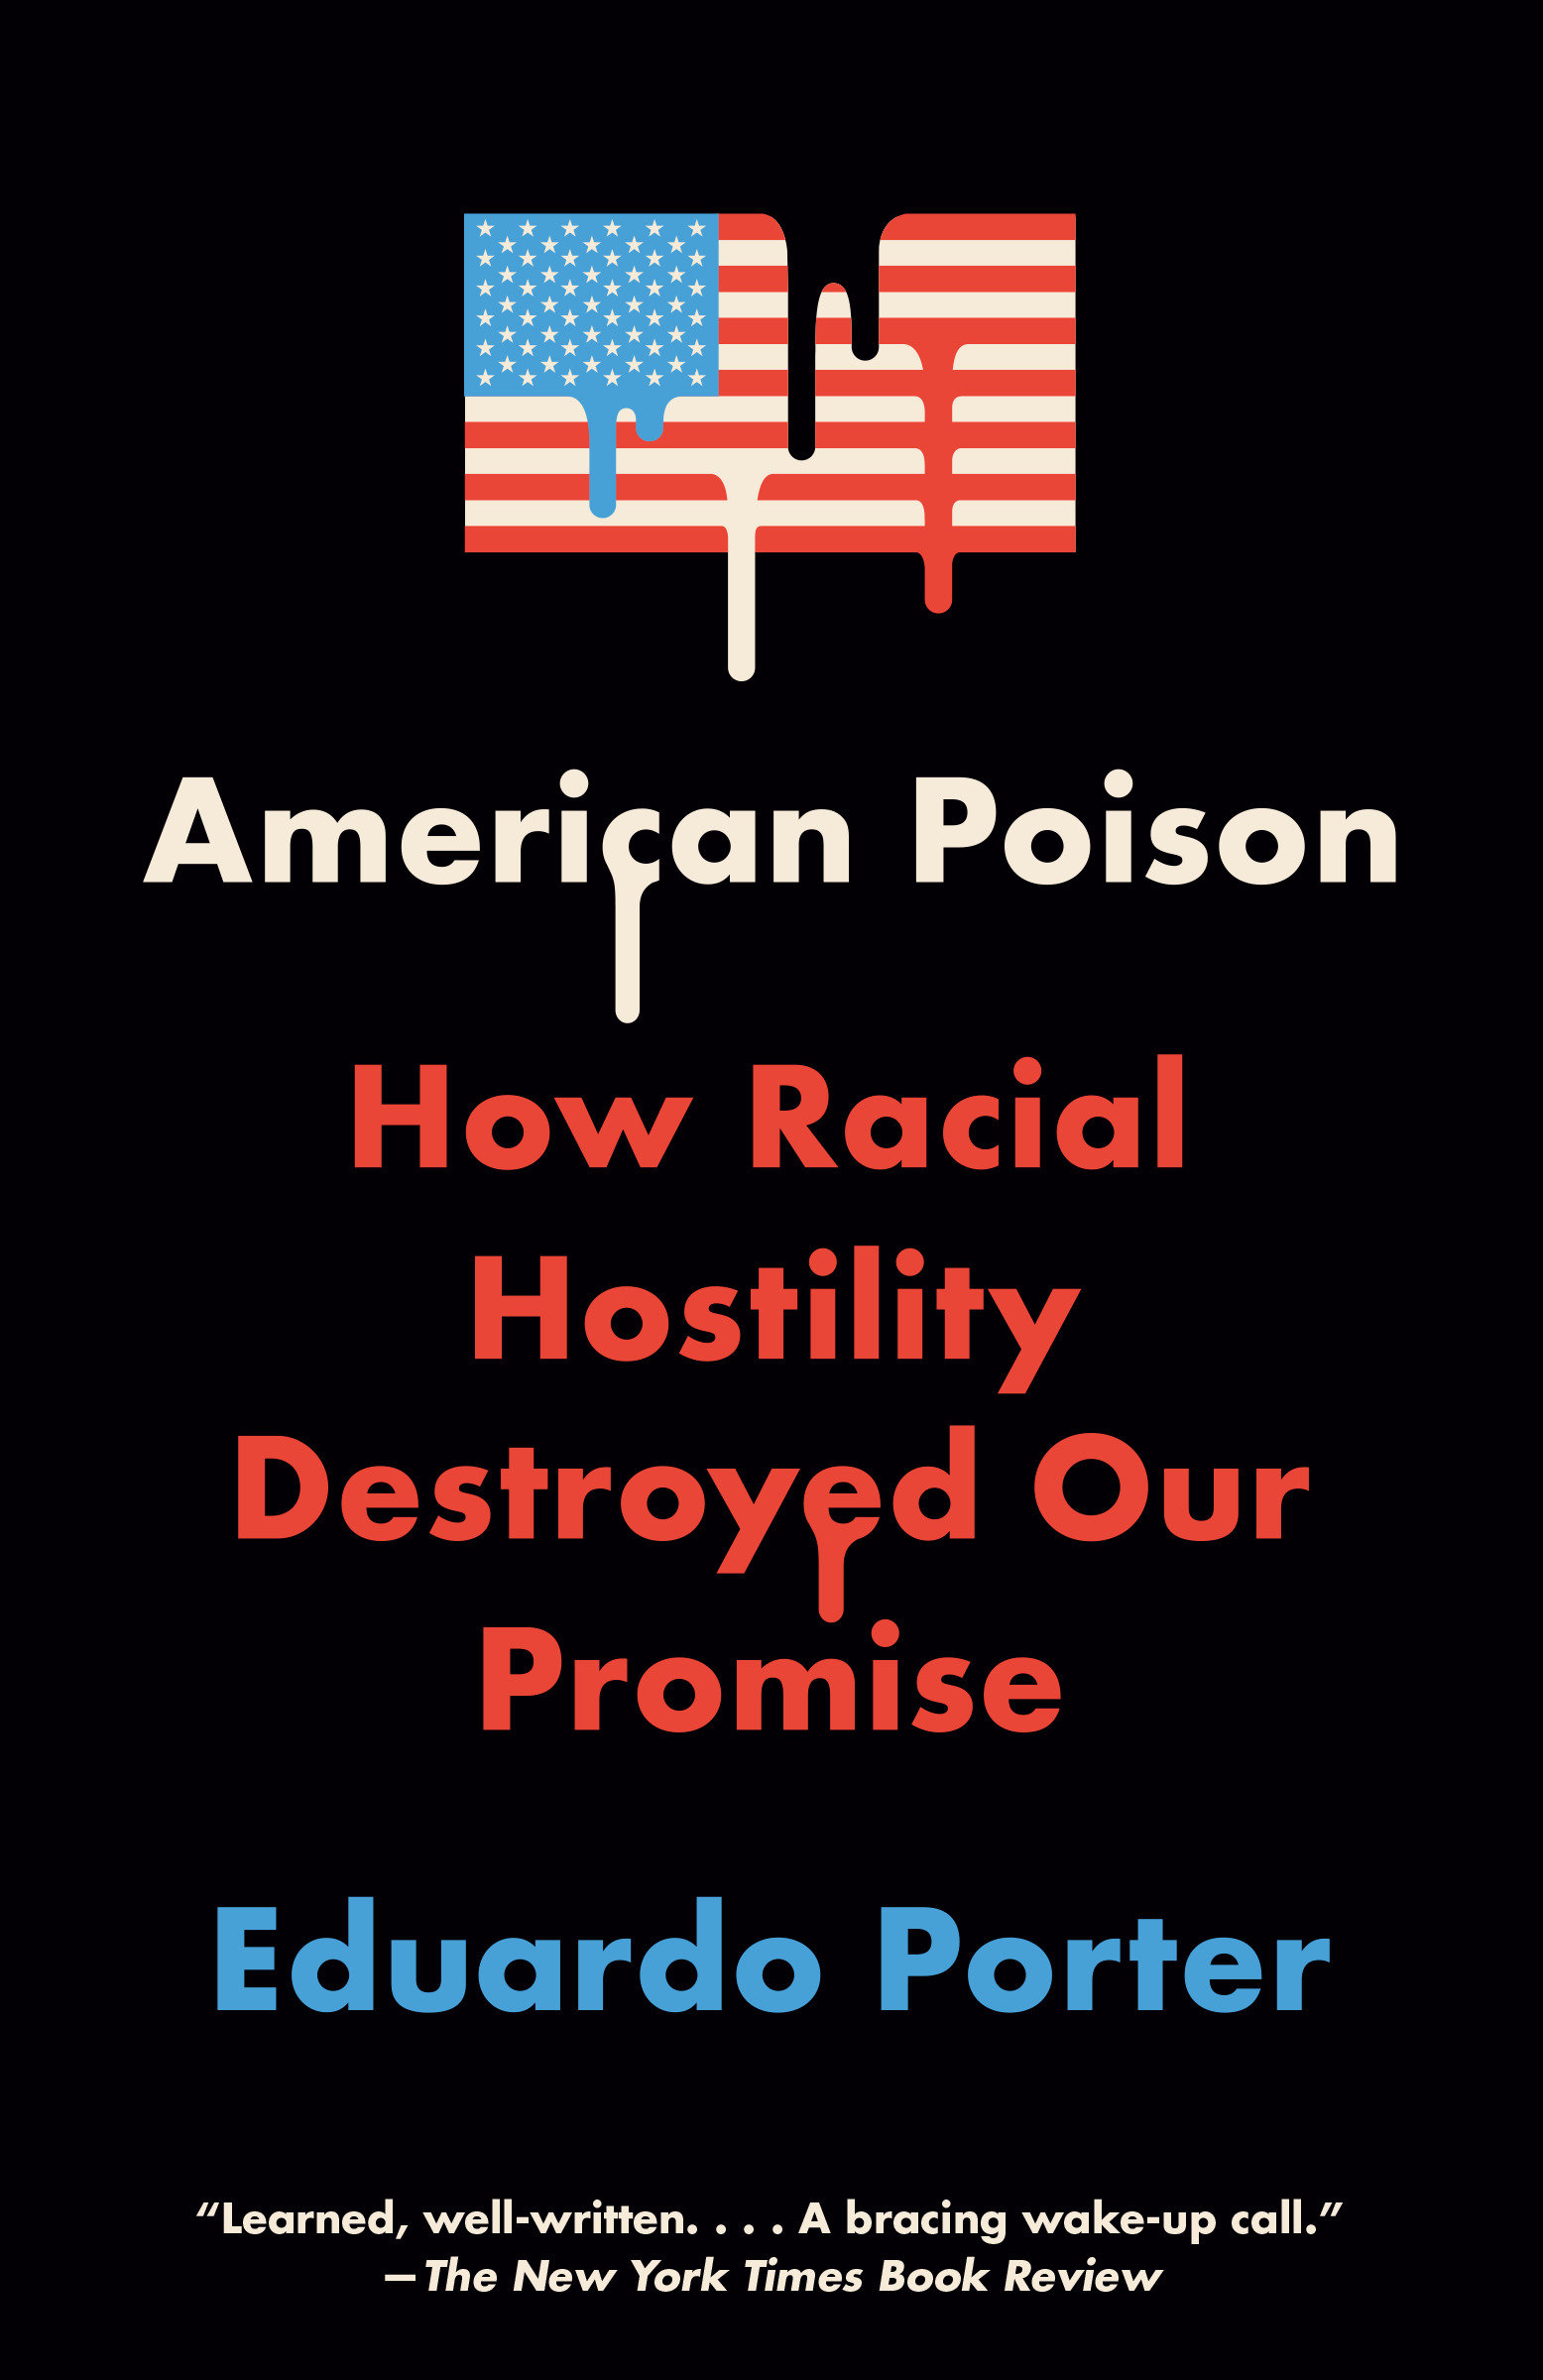 American Poison How Racial Hostility Destroyed Our Promise